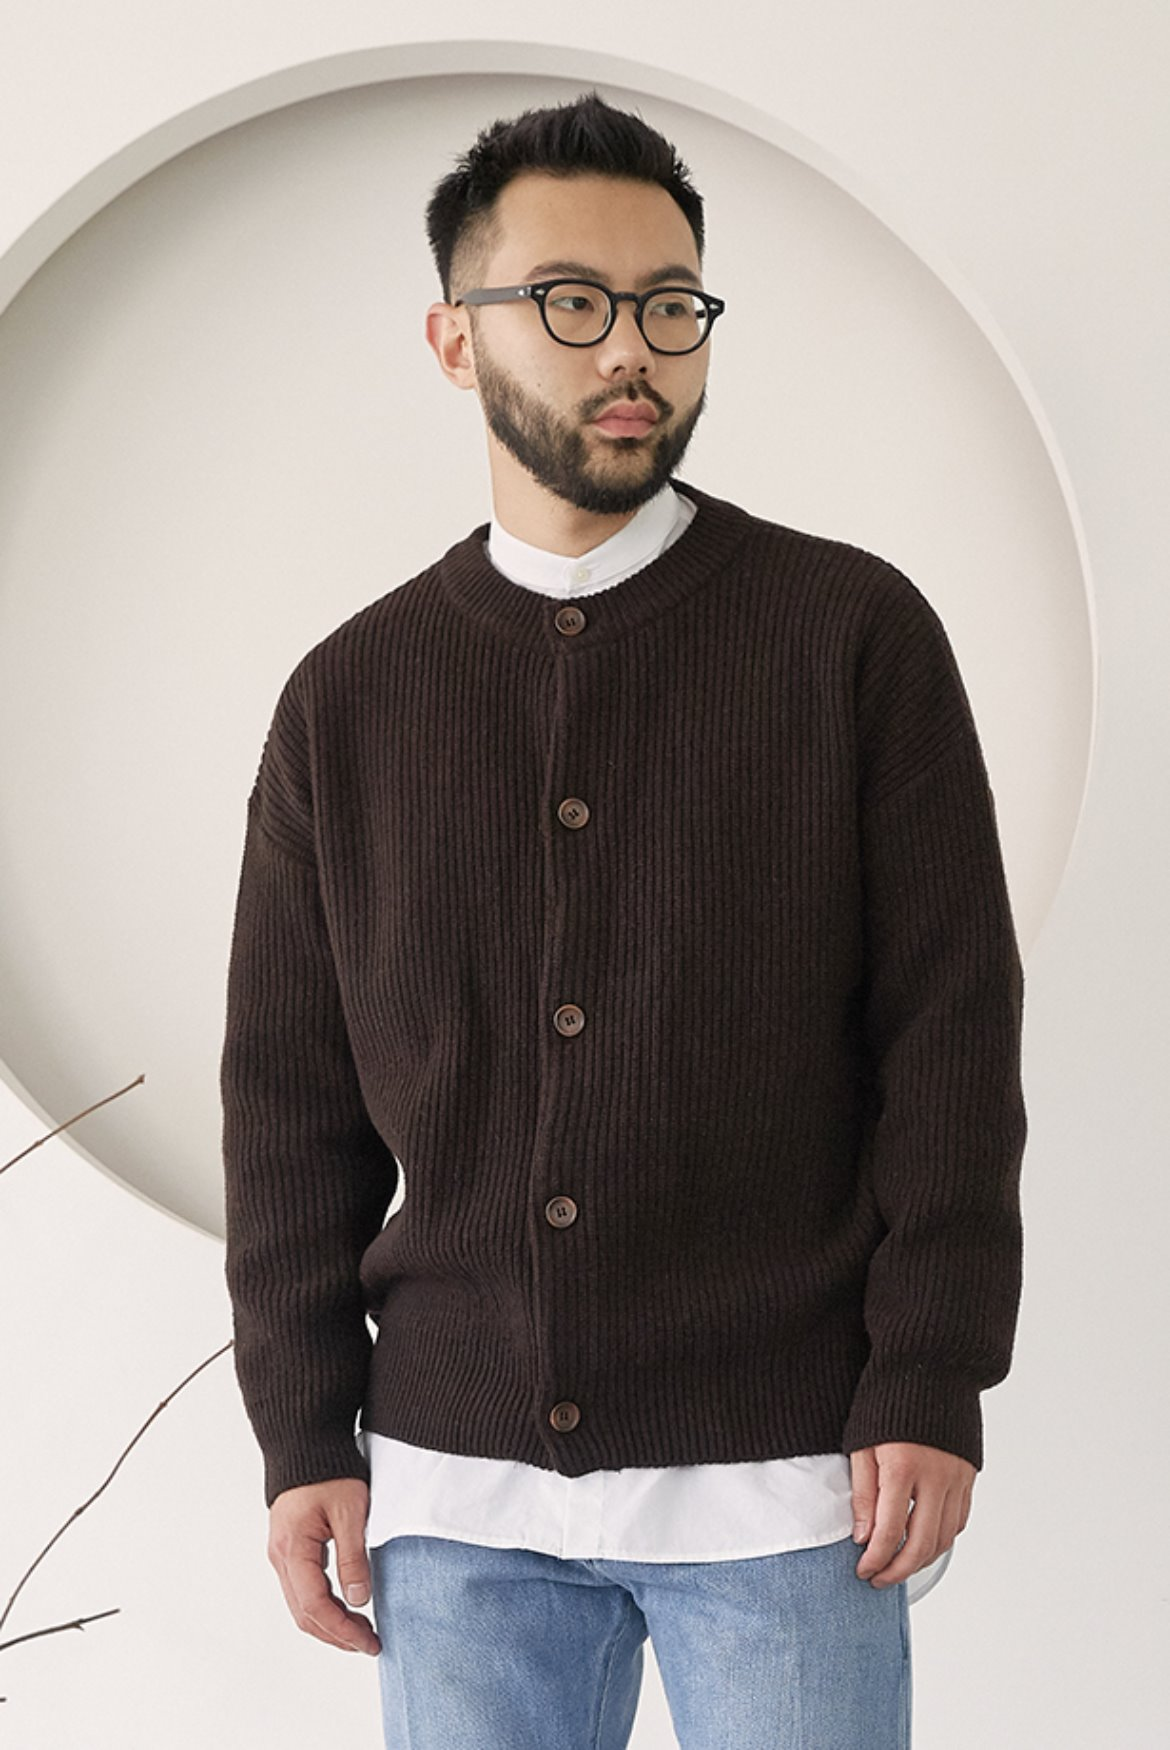 Concise Round Neck Cardigan [Brown]